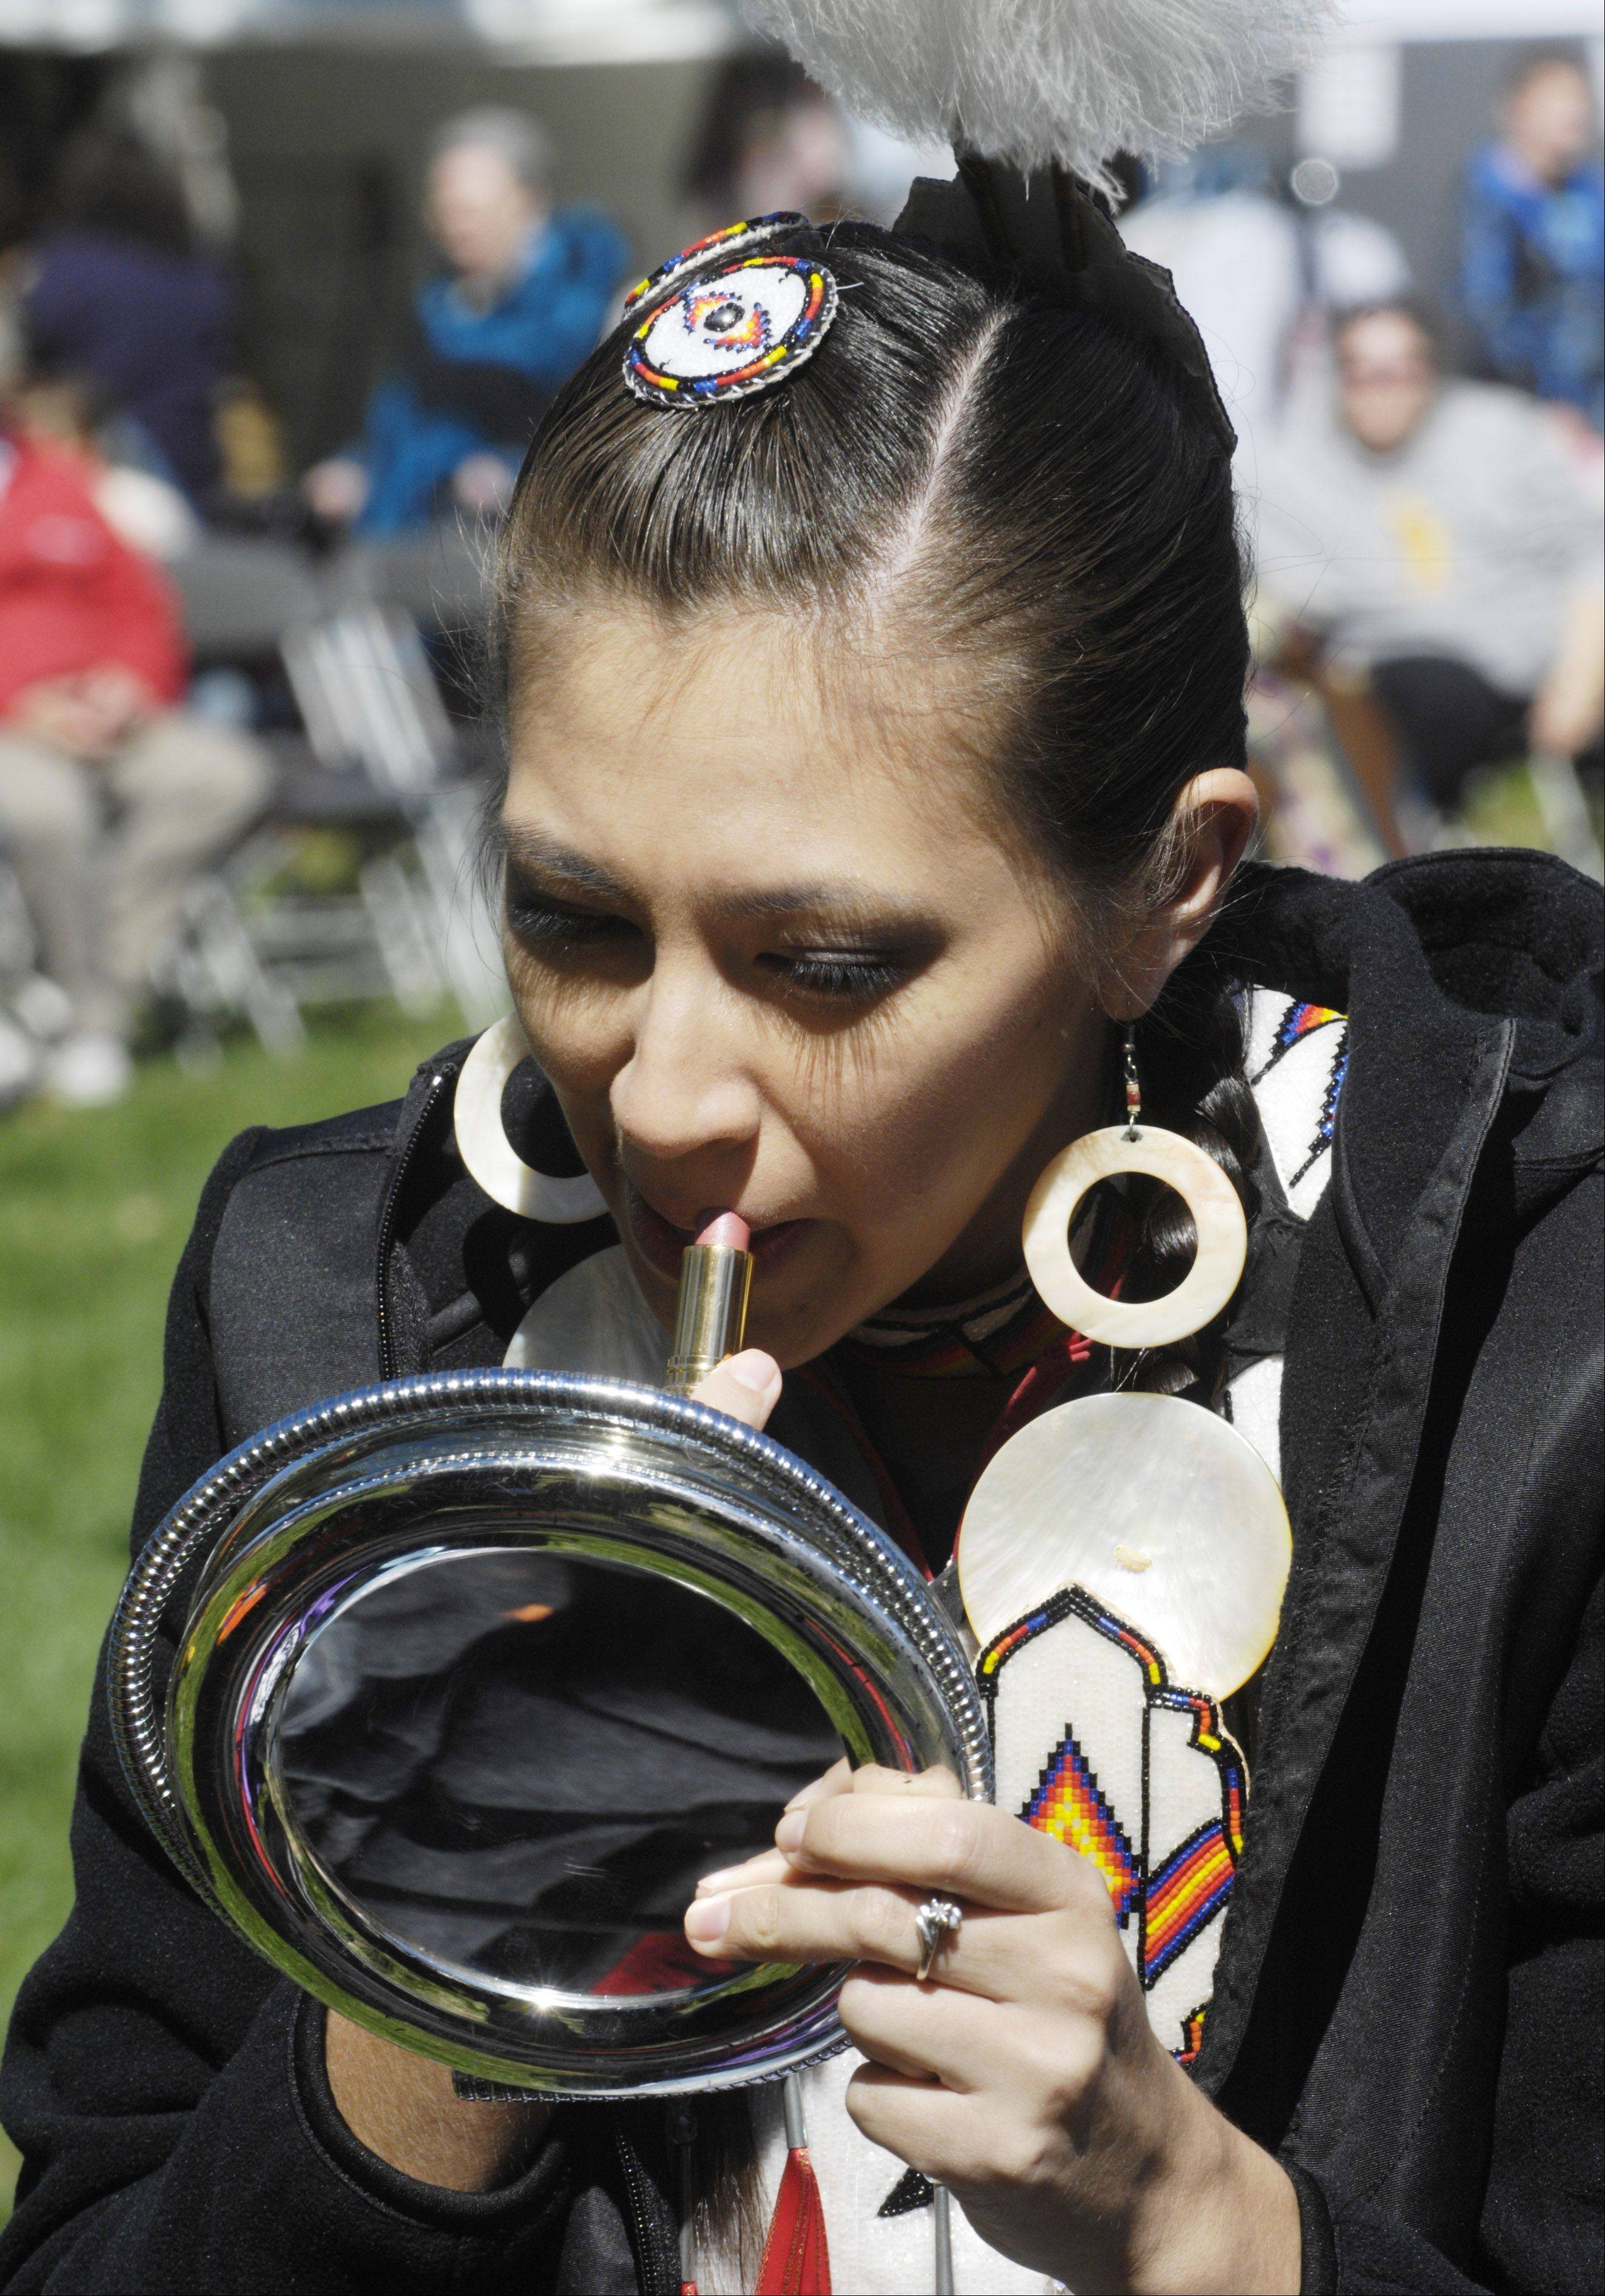 Nicole Sine, a member of the Ho-Chunk tribe who lives in Stillwater, Oklahoma, applies lipstick prior to the grand entrance at Saturday's annual Midwest SOARRING Foundation Harvest Pow Wow at the Naper Settlement in Naperville.